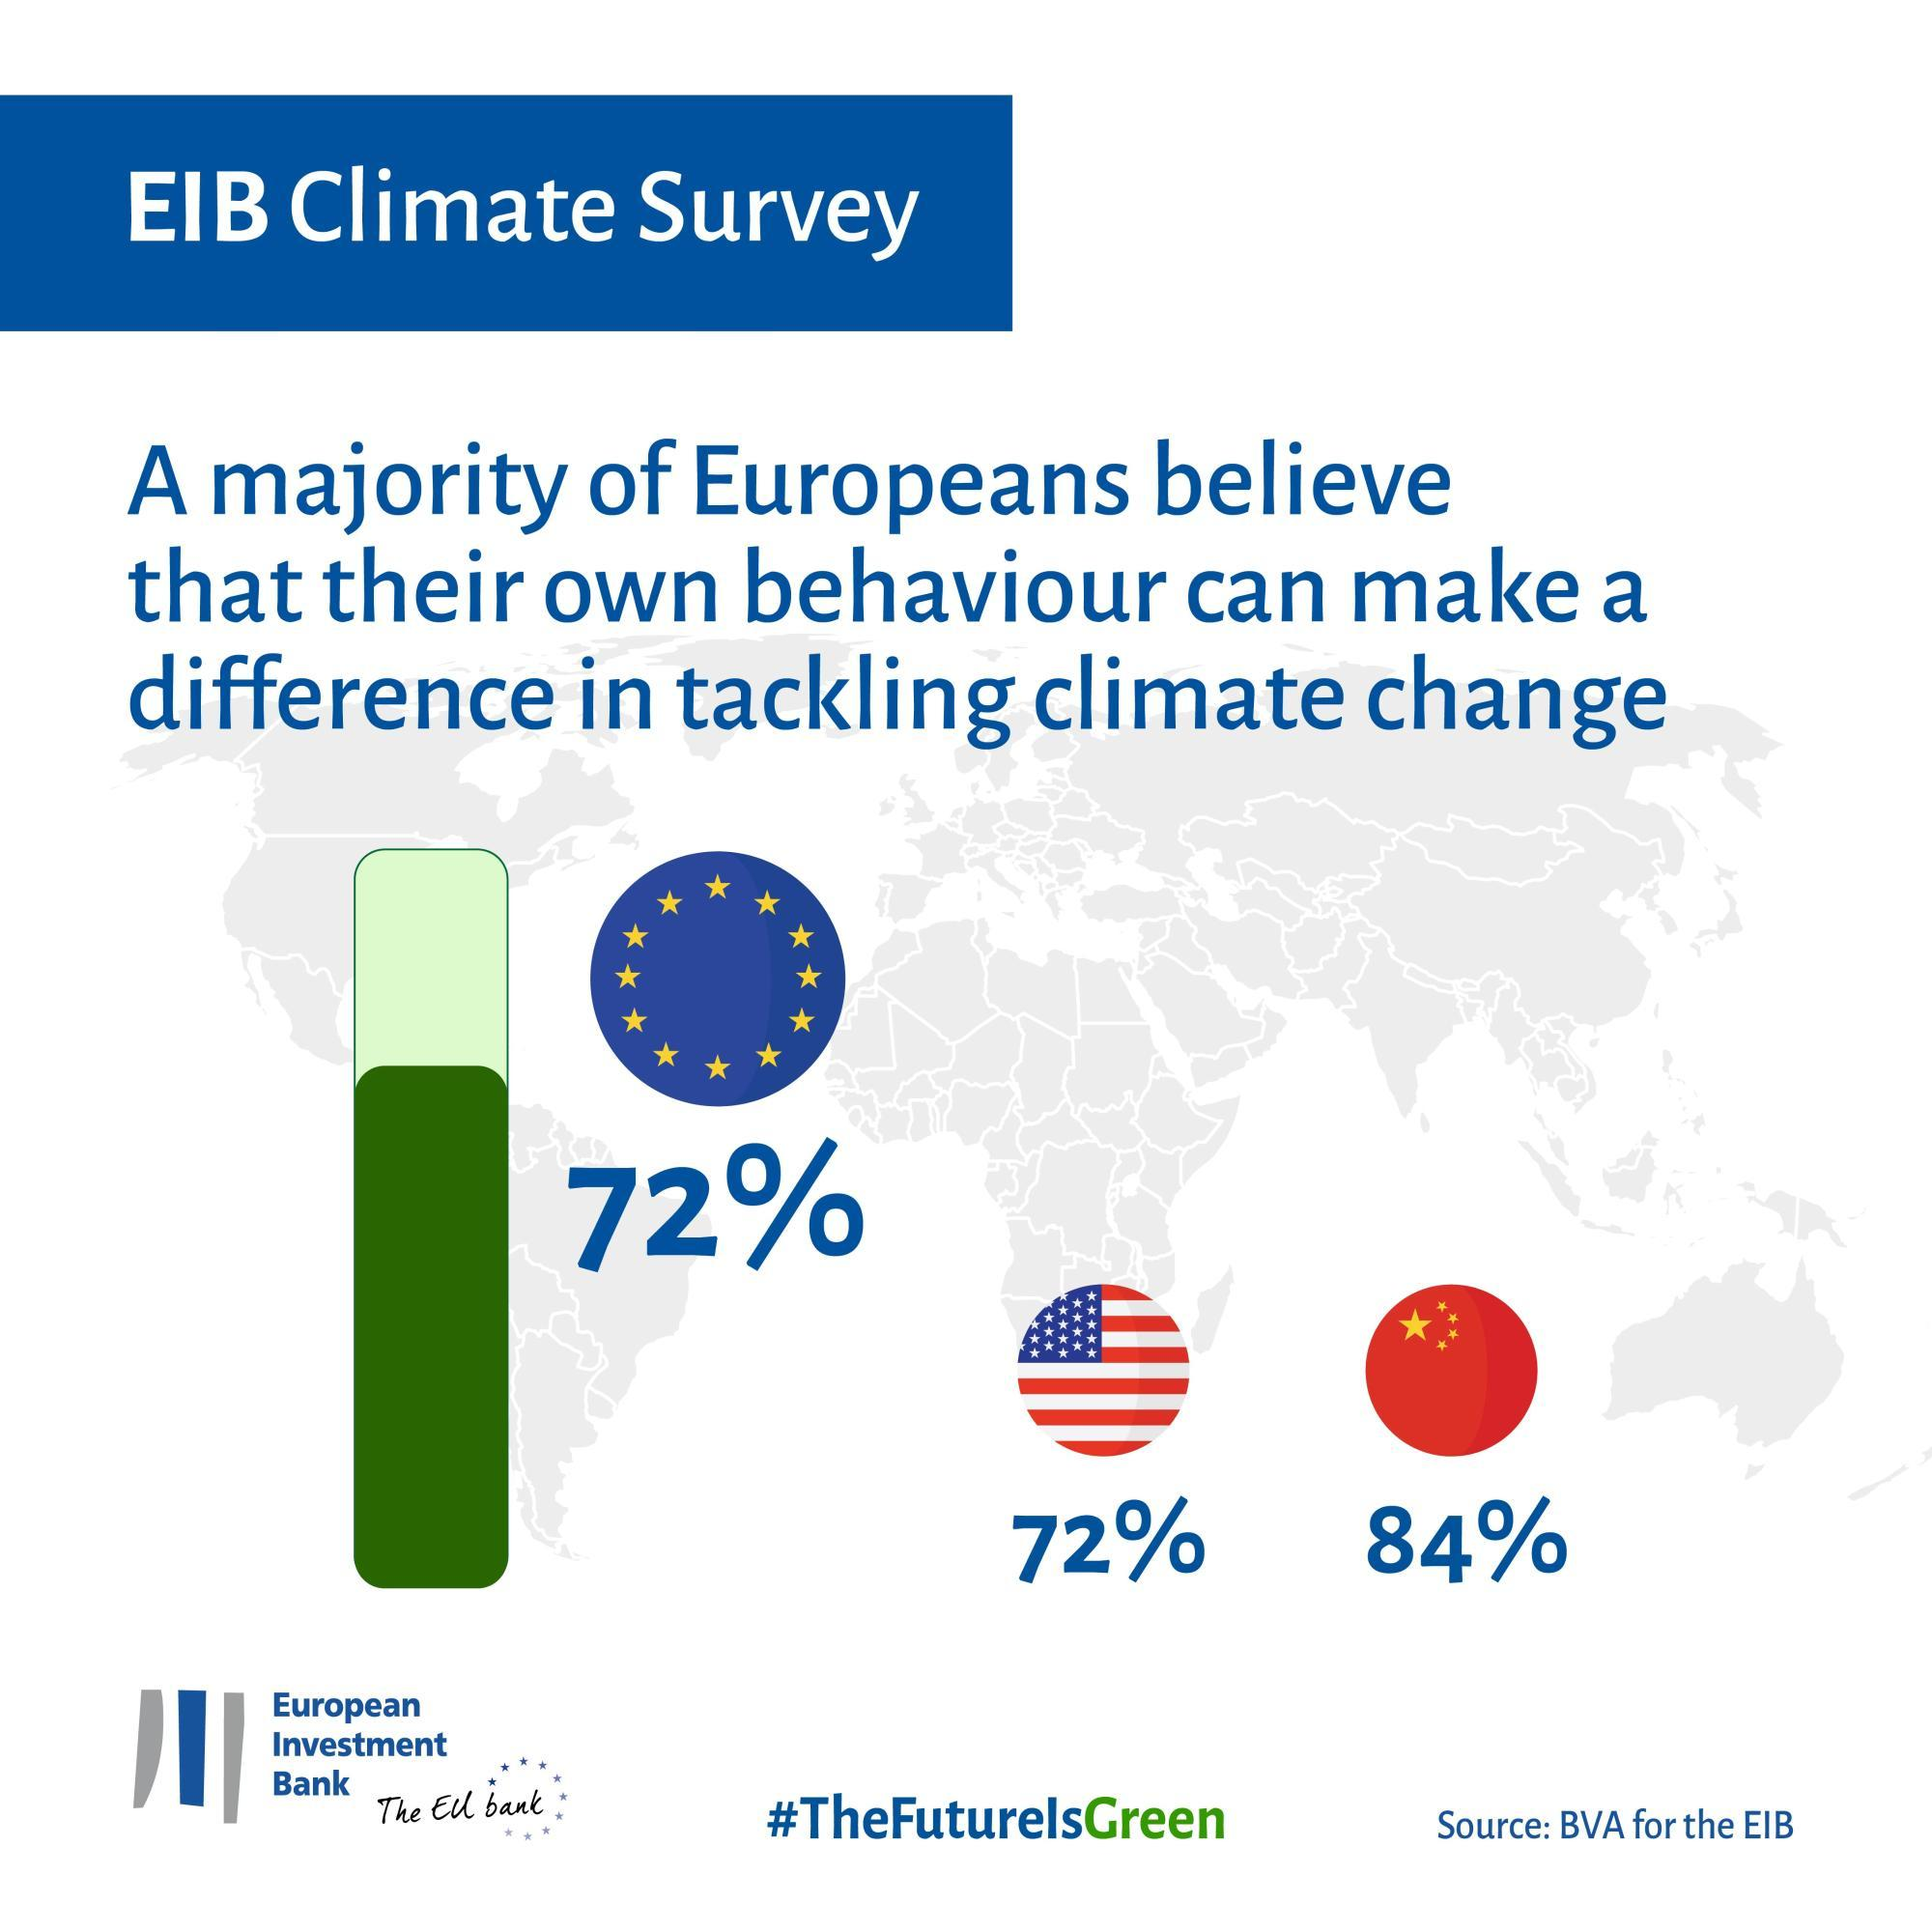 A majority of Europeans believe that their own behaviour can make a difference in tackling climate change